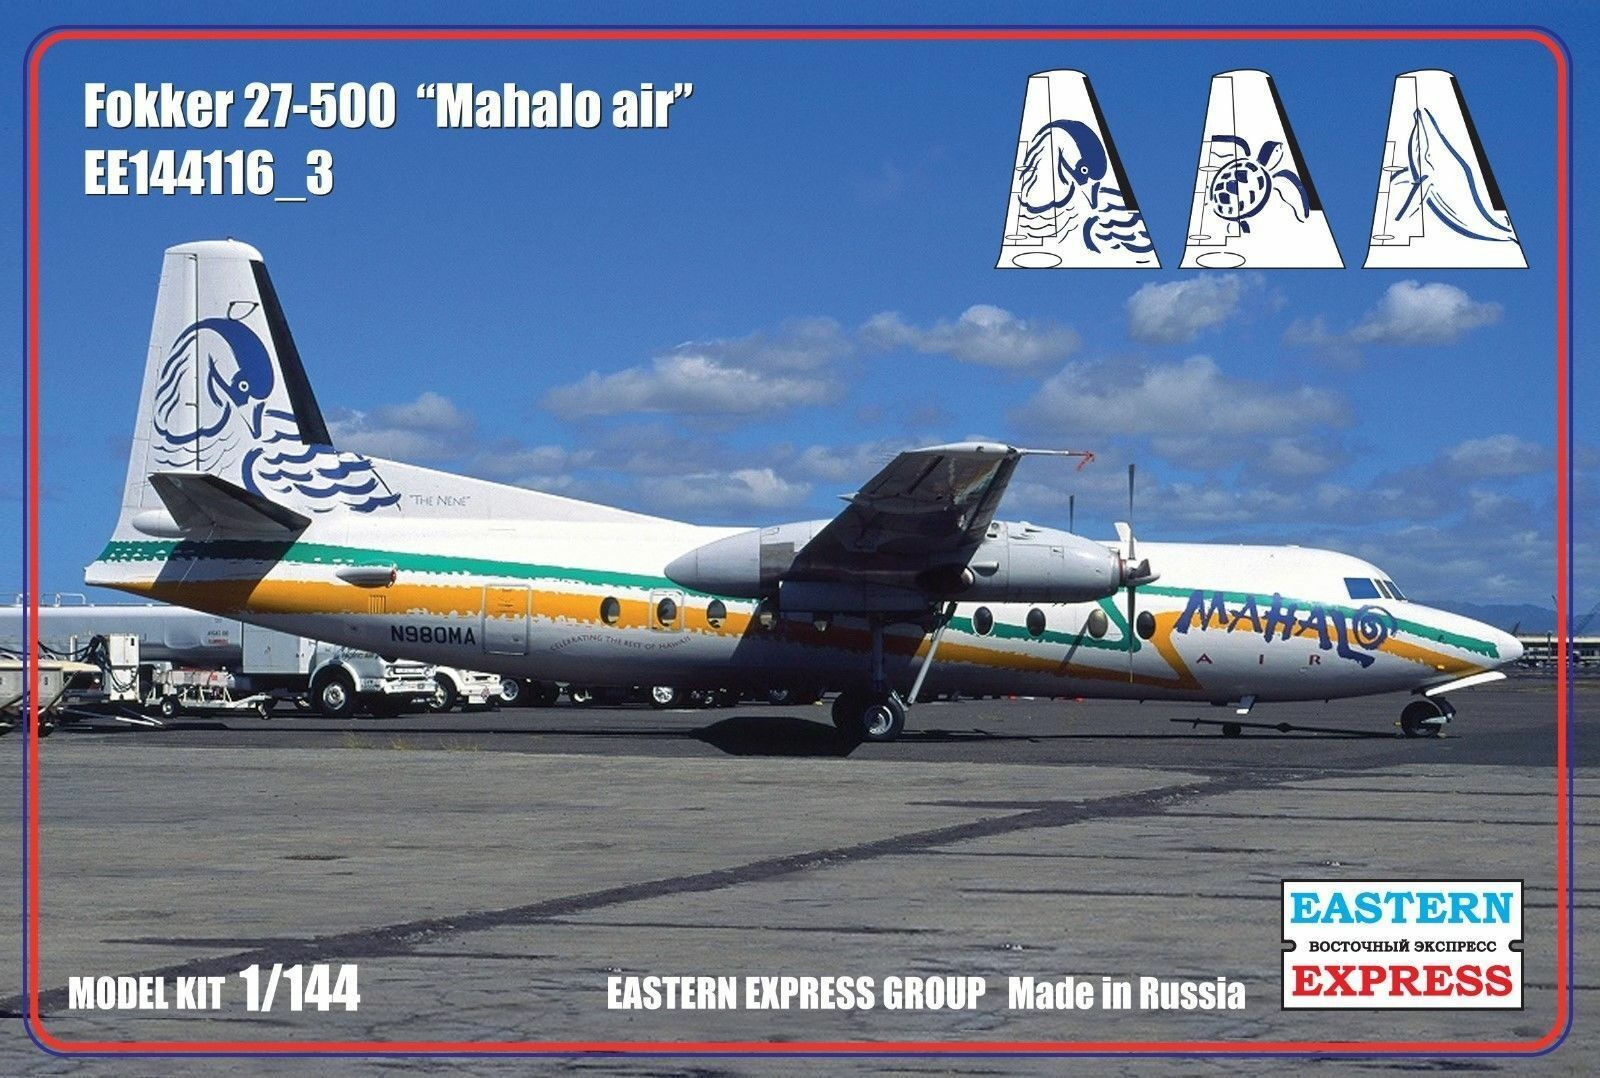 EASTERN EXPRESS 144116-3 FOKKER 27-500 MAHALO AIRLINES SCALE MODEL KIT 1 144 NEW